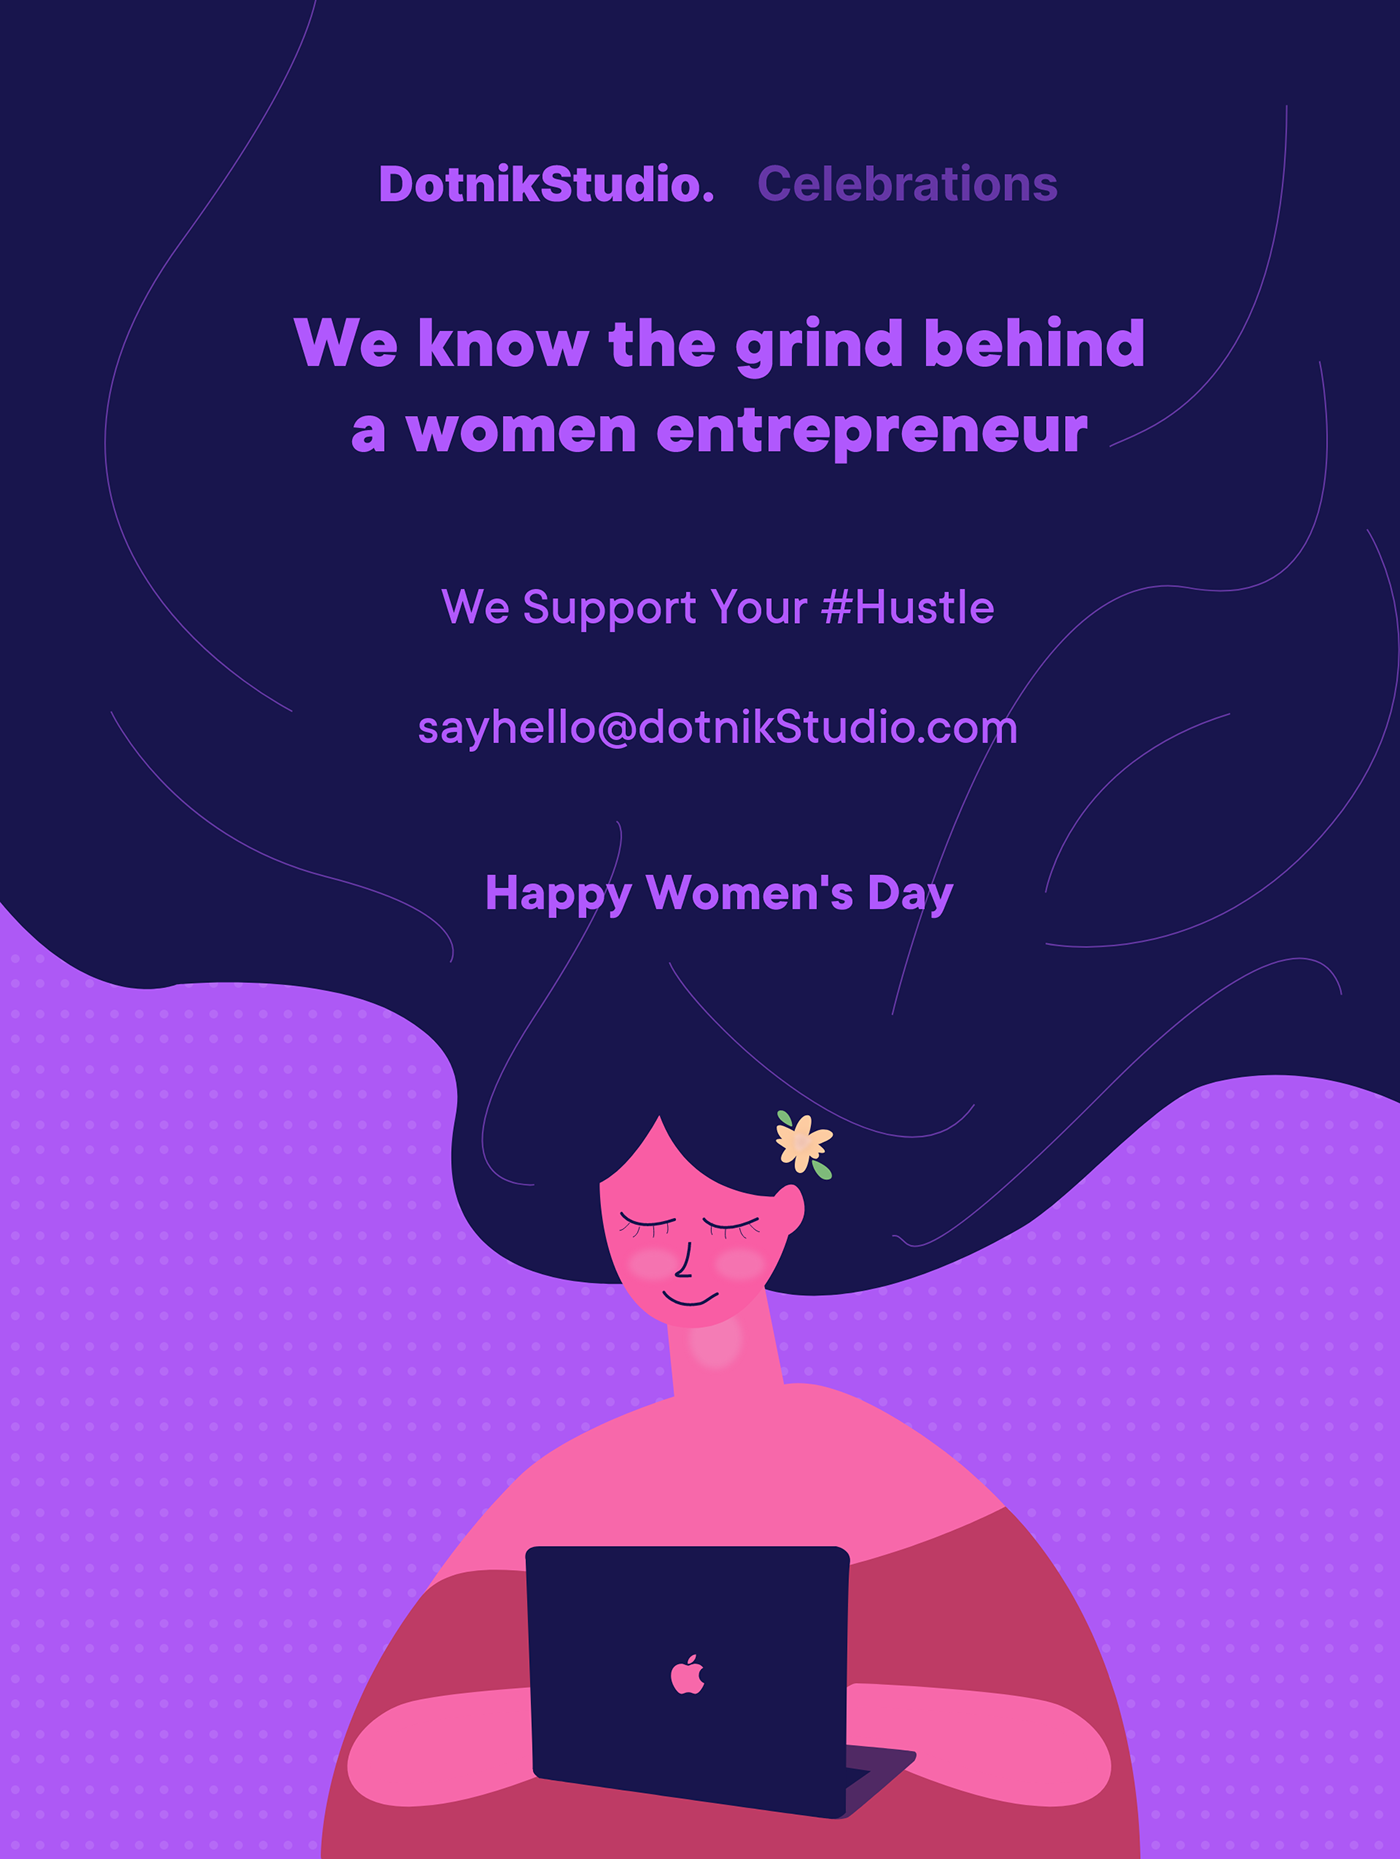 Happy Women's Day Illustration Cover -  Dotnik Studio Celebrations